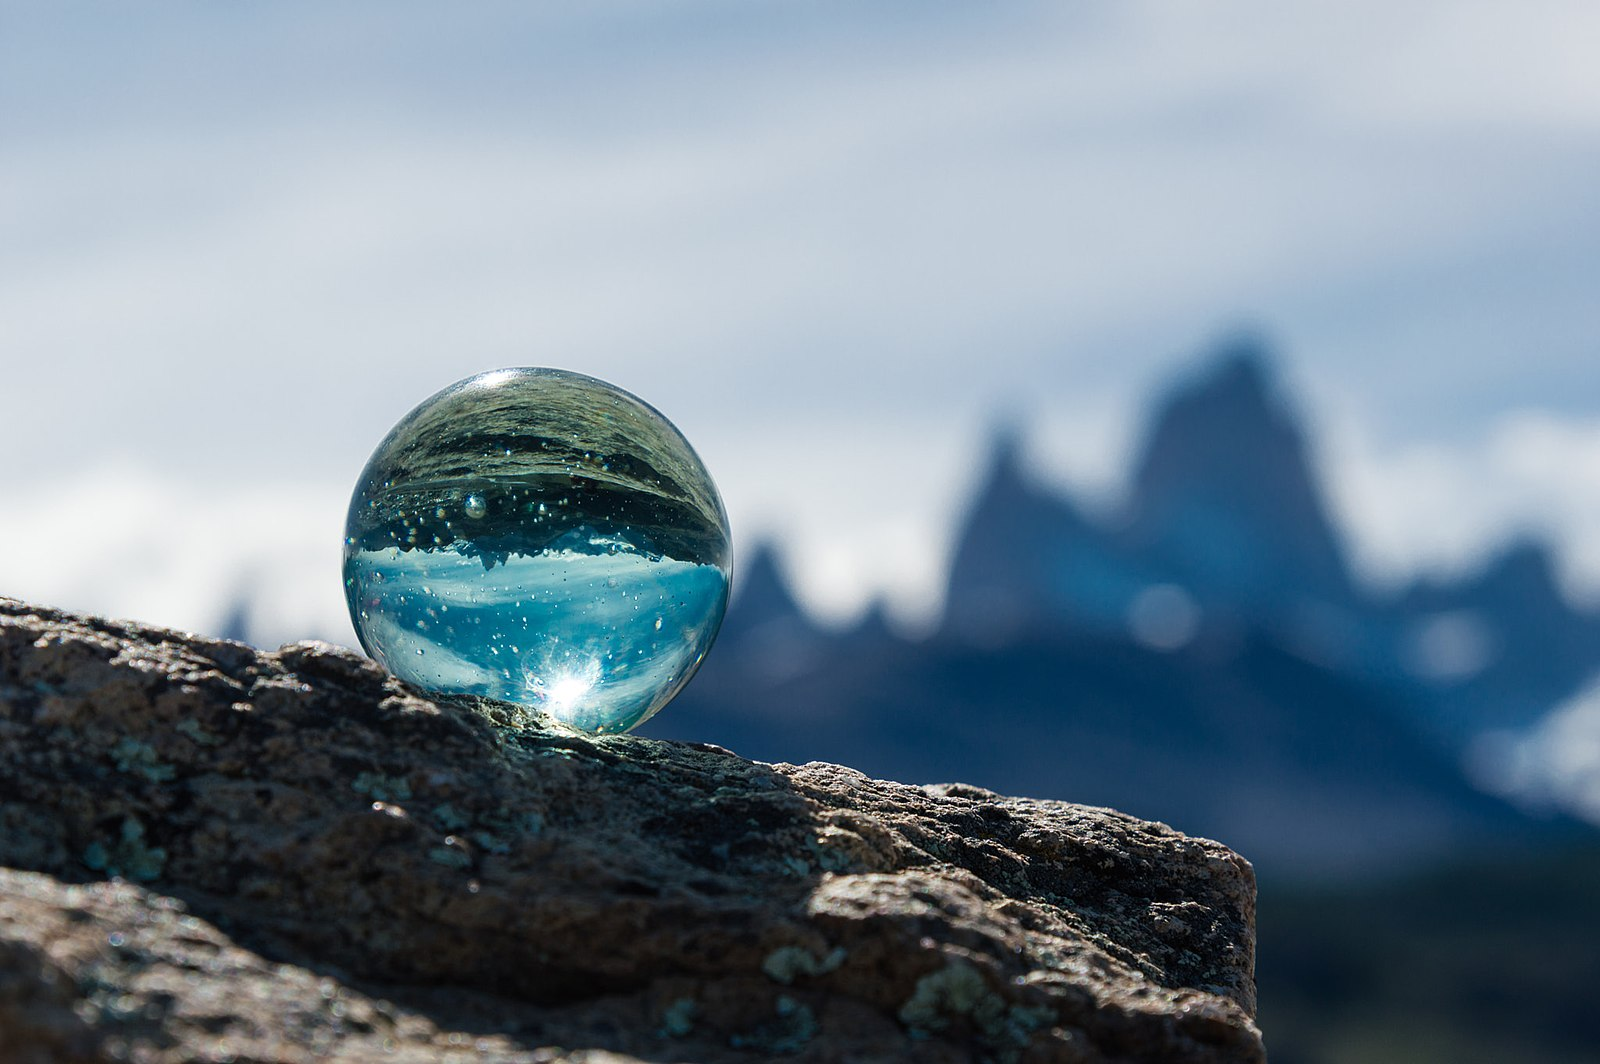 Andes_In_A_Crystal_Ball_(190455783)